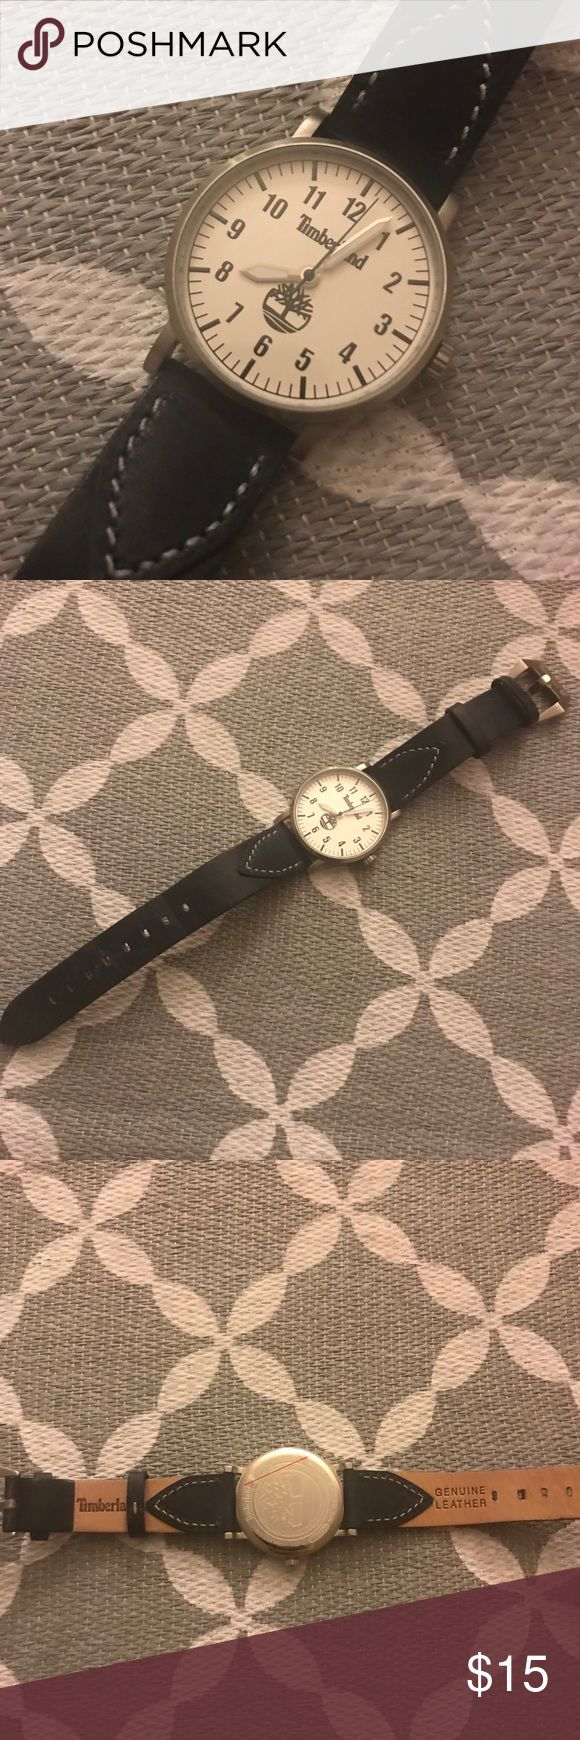 Women's Navy Leather Timberland Watch Women's Navy Leather Timberland Watch. Like new condition. Needs battery! Timberland Accessories Watches